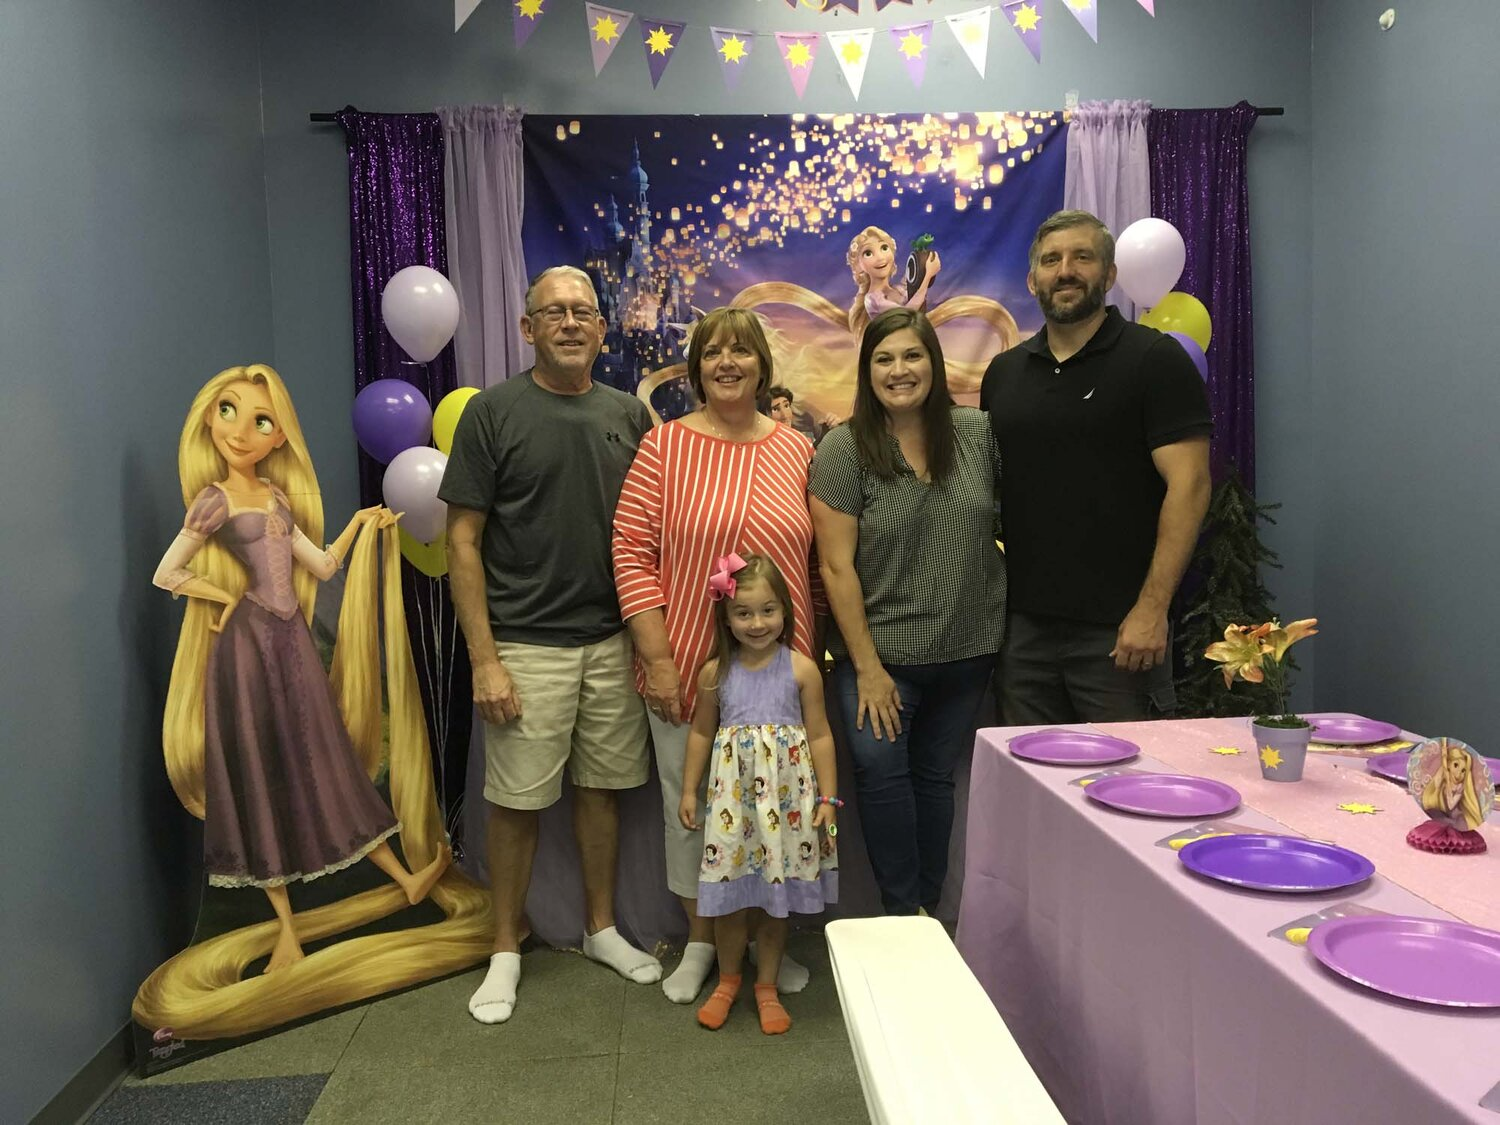 Orlando FL Rapunzel Themed Birthday Party For 4 Year Old Girl